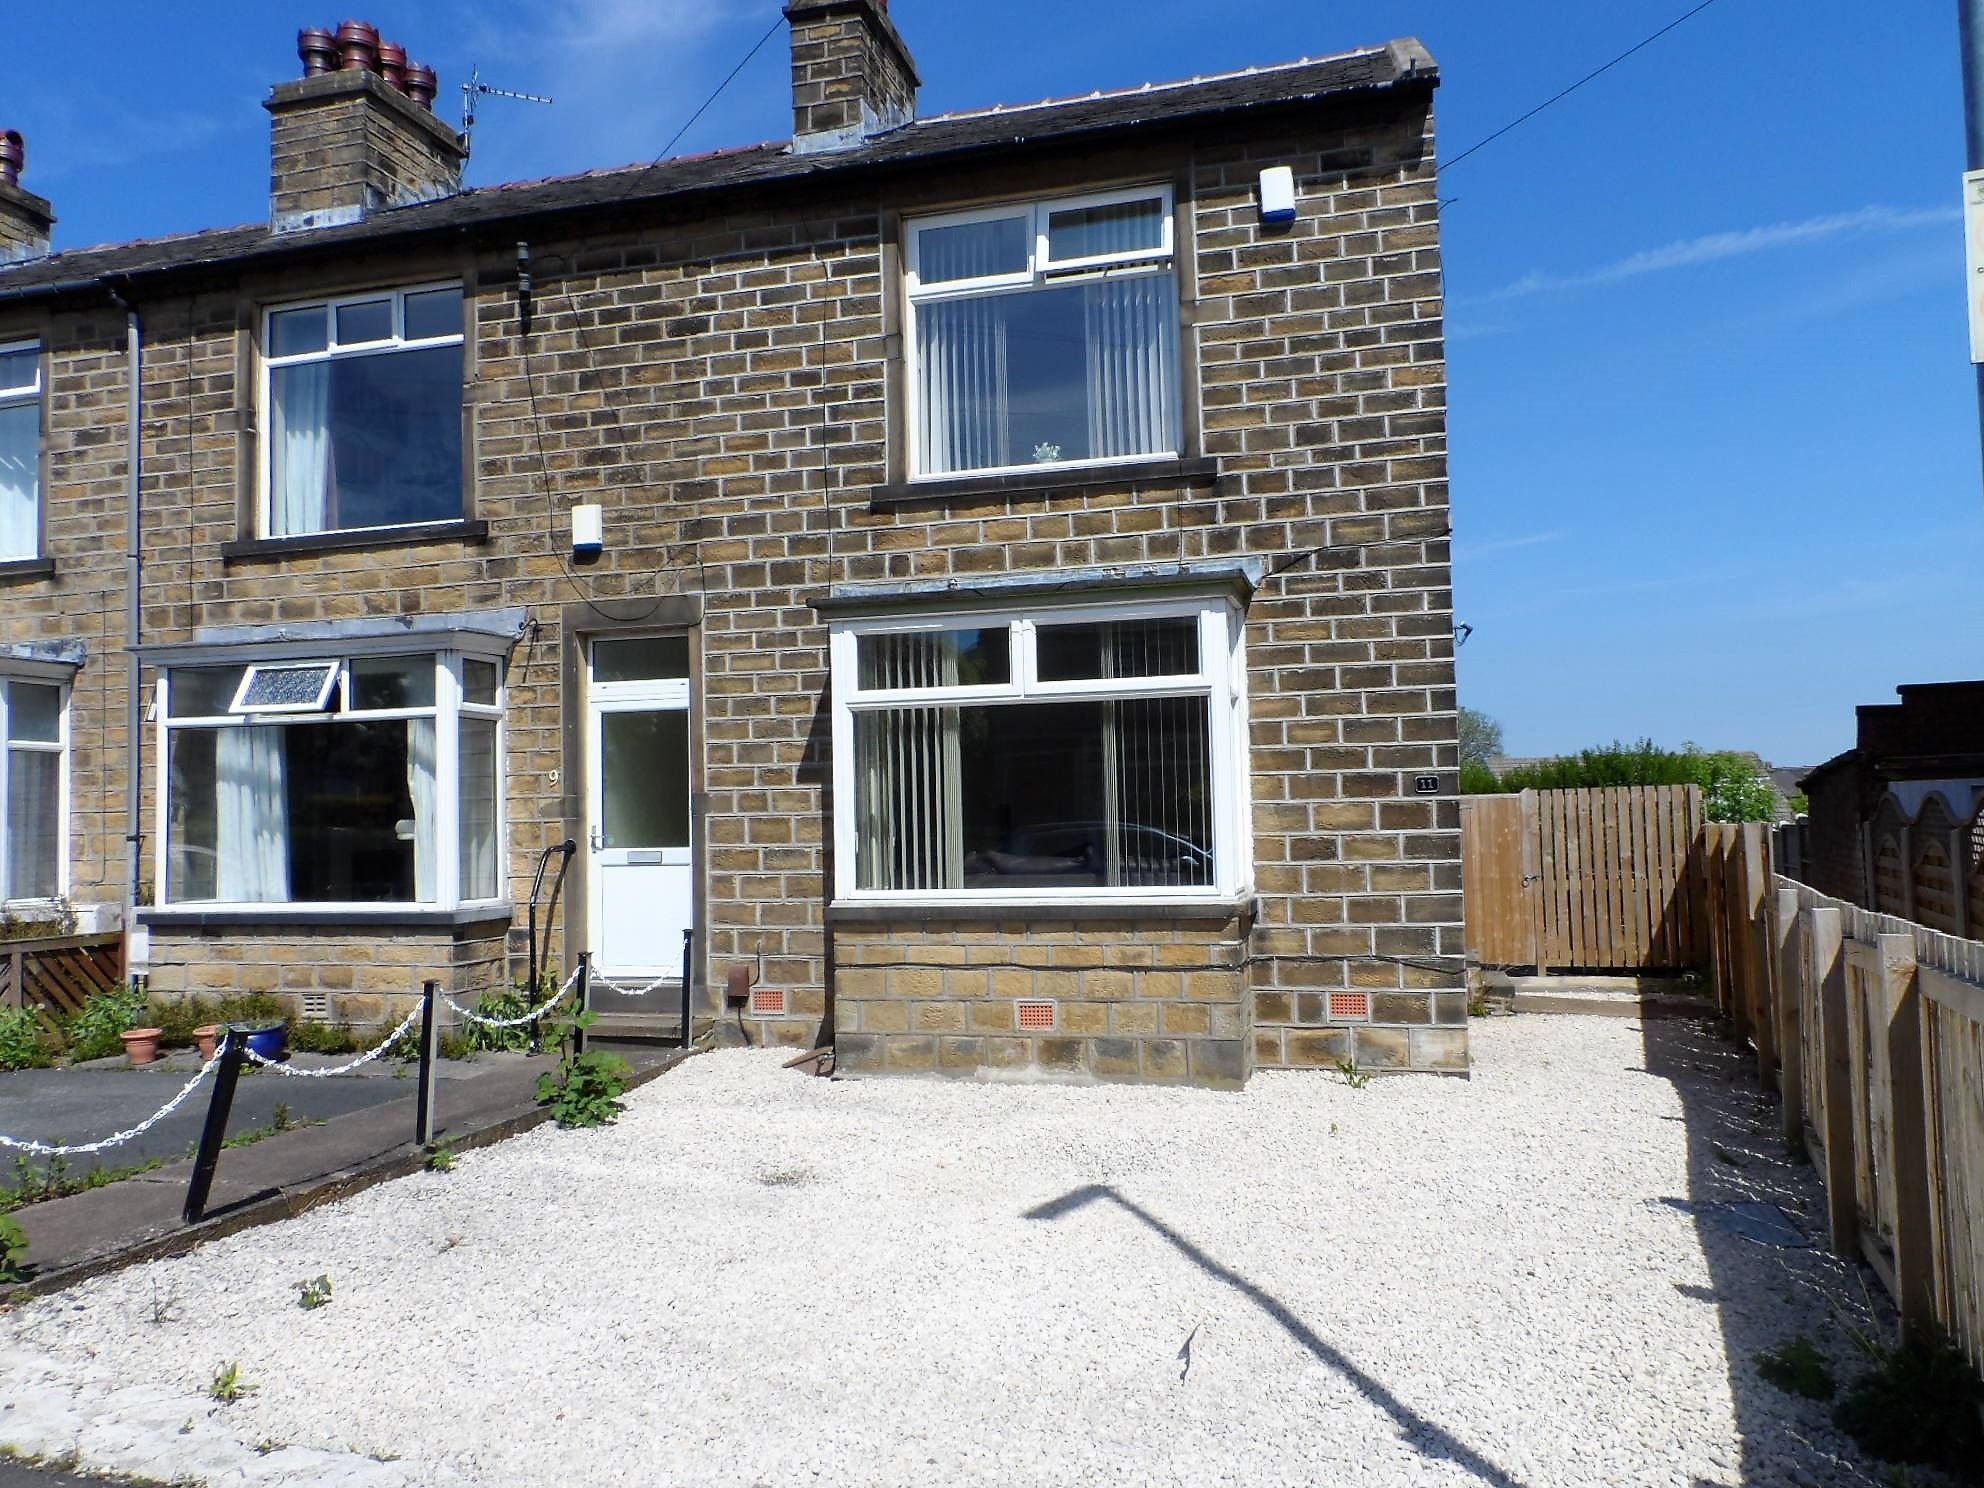 2 bedroom end terraced house SSTC in Huddersfield - Photograph 1